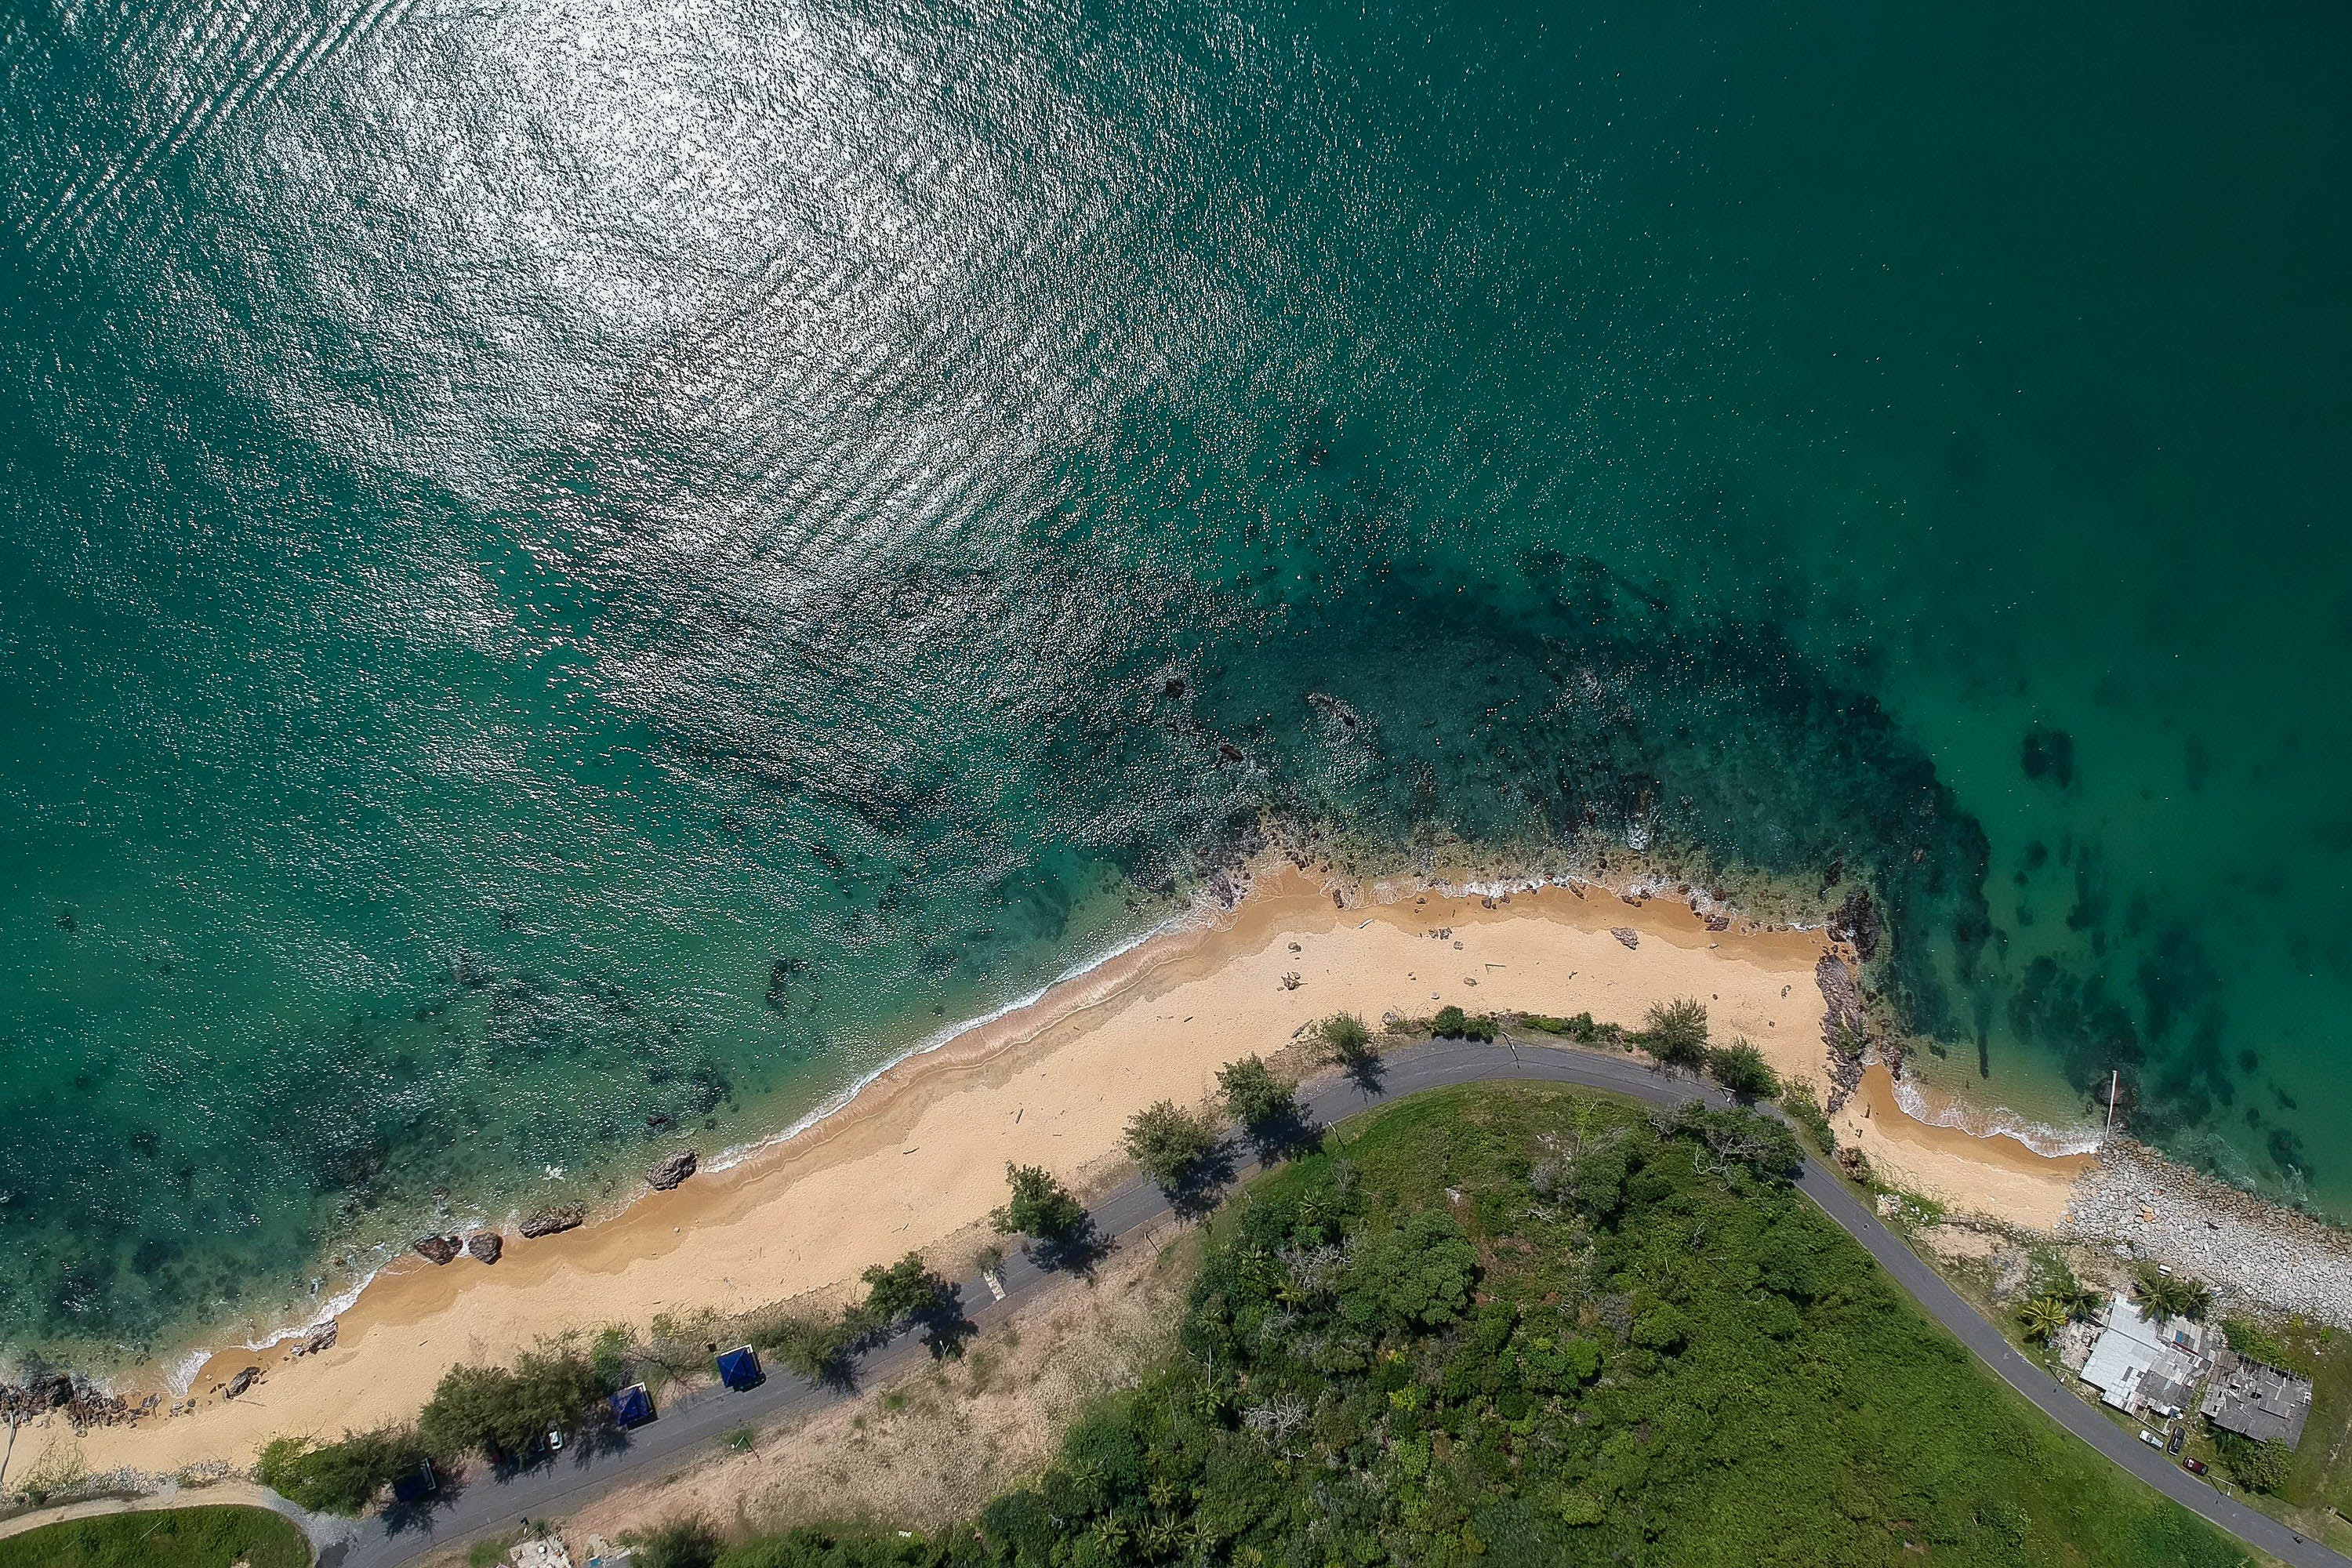 Aerial Photography of Green Trees in Front of Body of Water